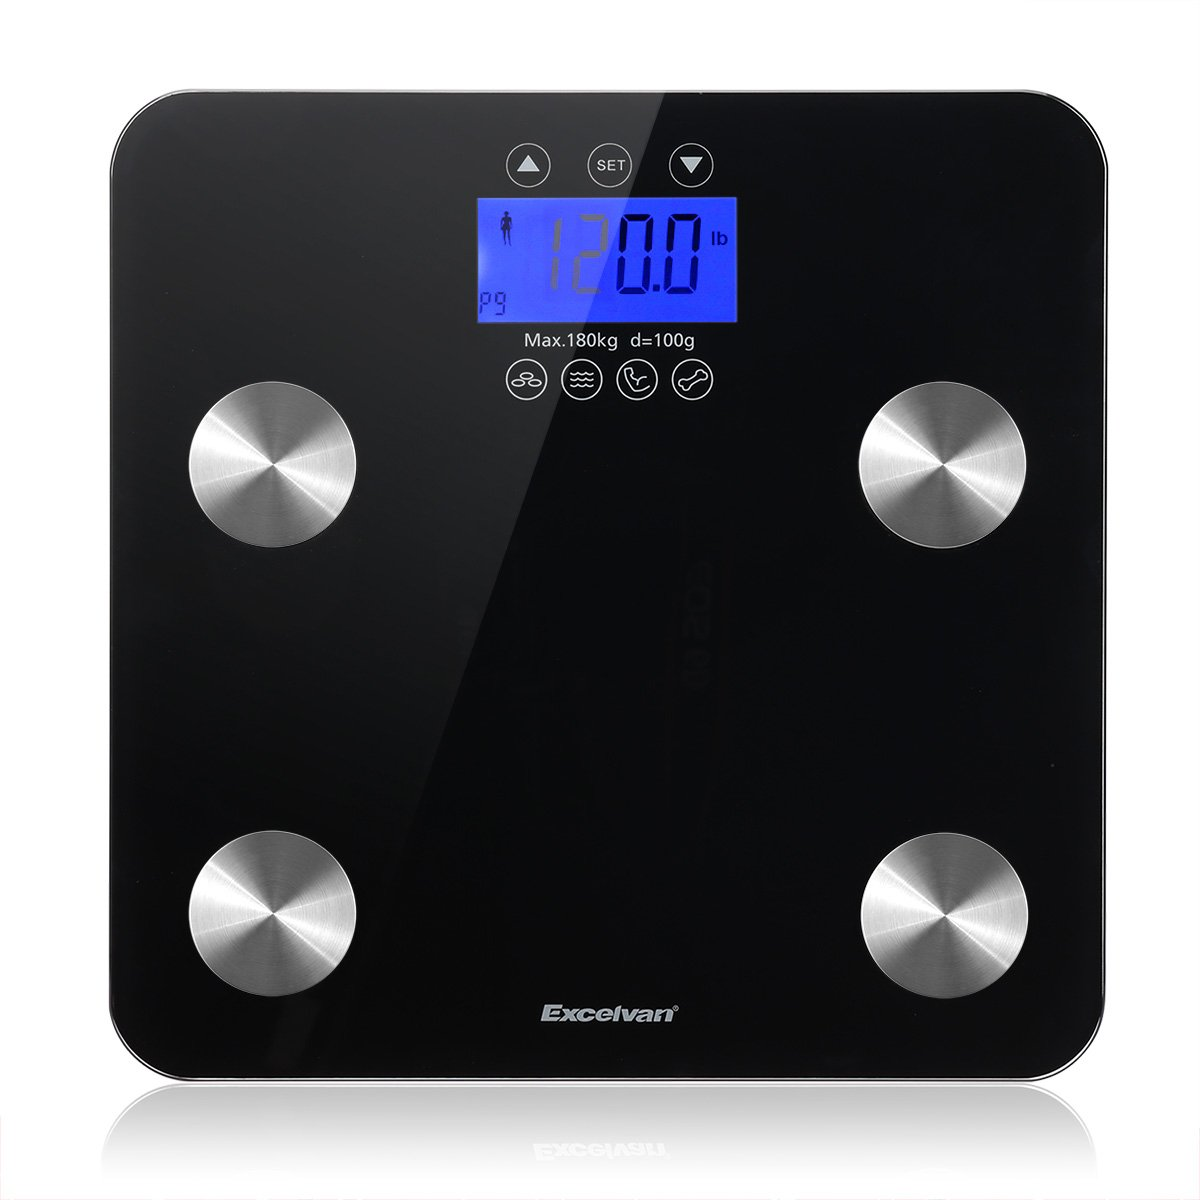 Excelvan Digital Body Fat Weight Scale, Body Composition AnalyzerHealth Monitor with Large Backlit Display, 7 AccurateHealthMetrics Measurements, Black